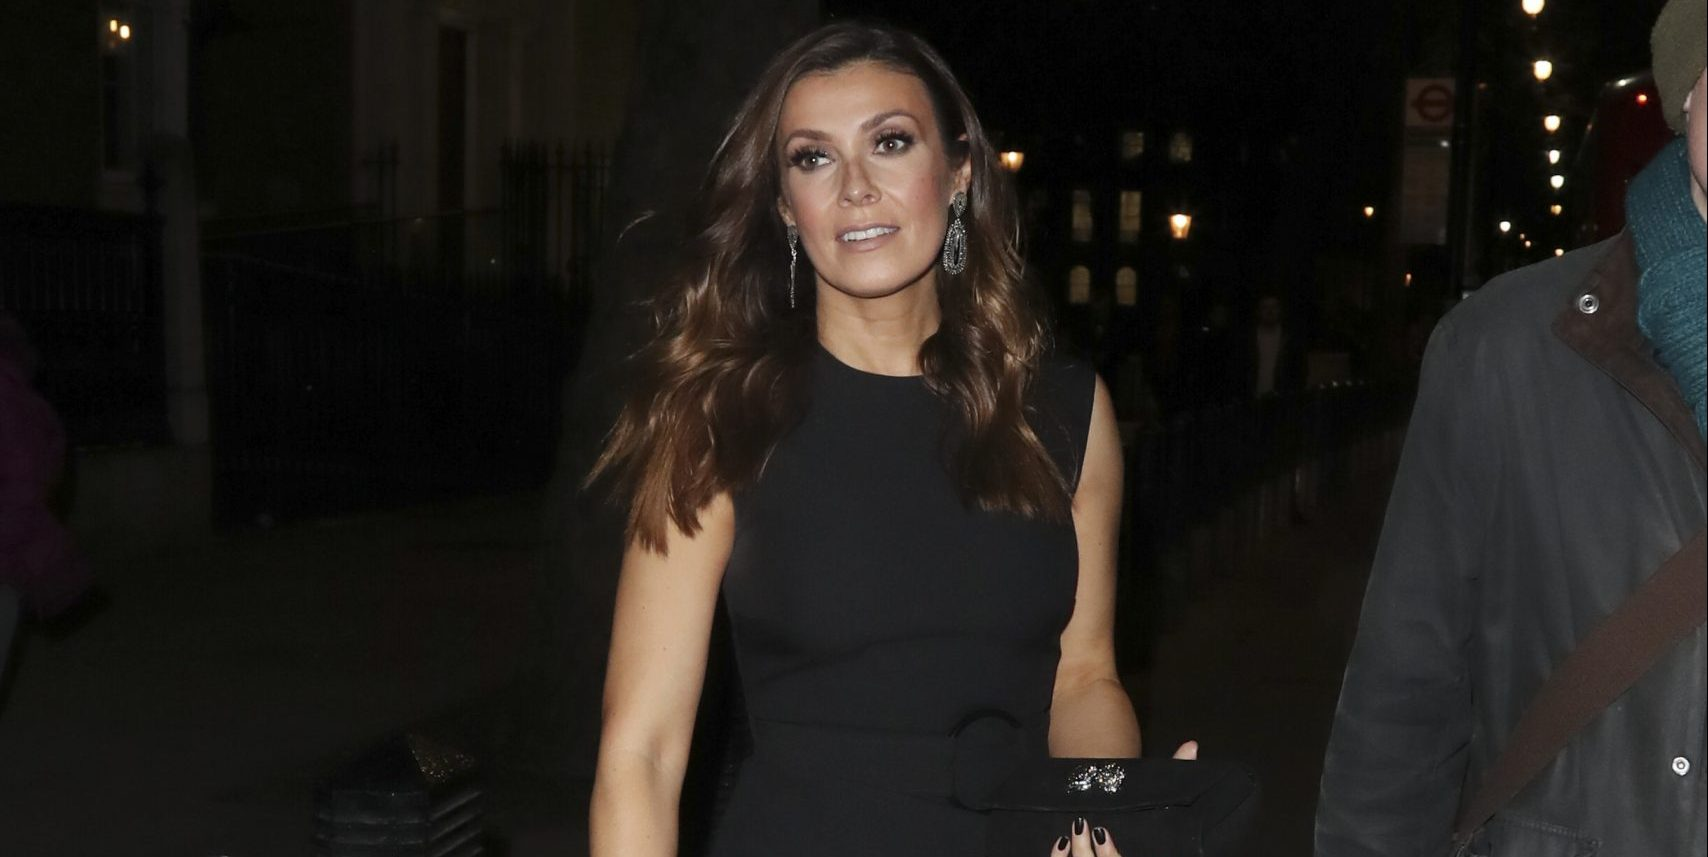 Kym Marsh reveals process of leaving Coronation Street has been 'really difficult'